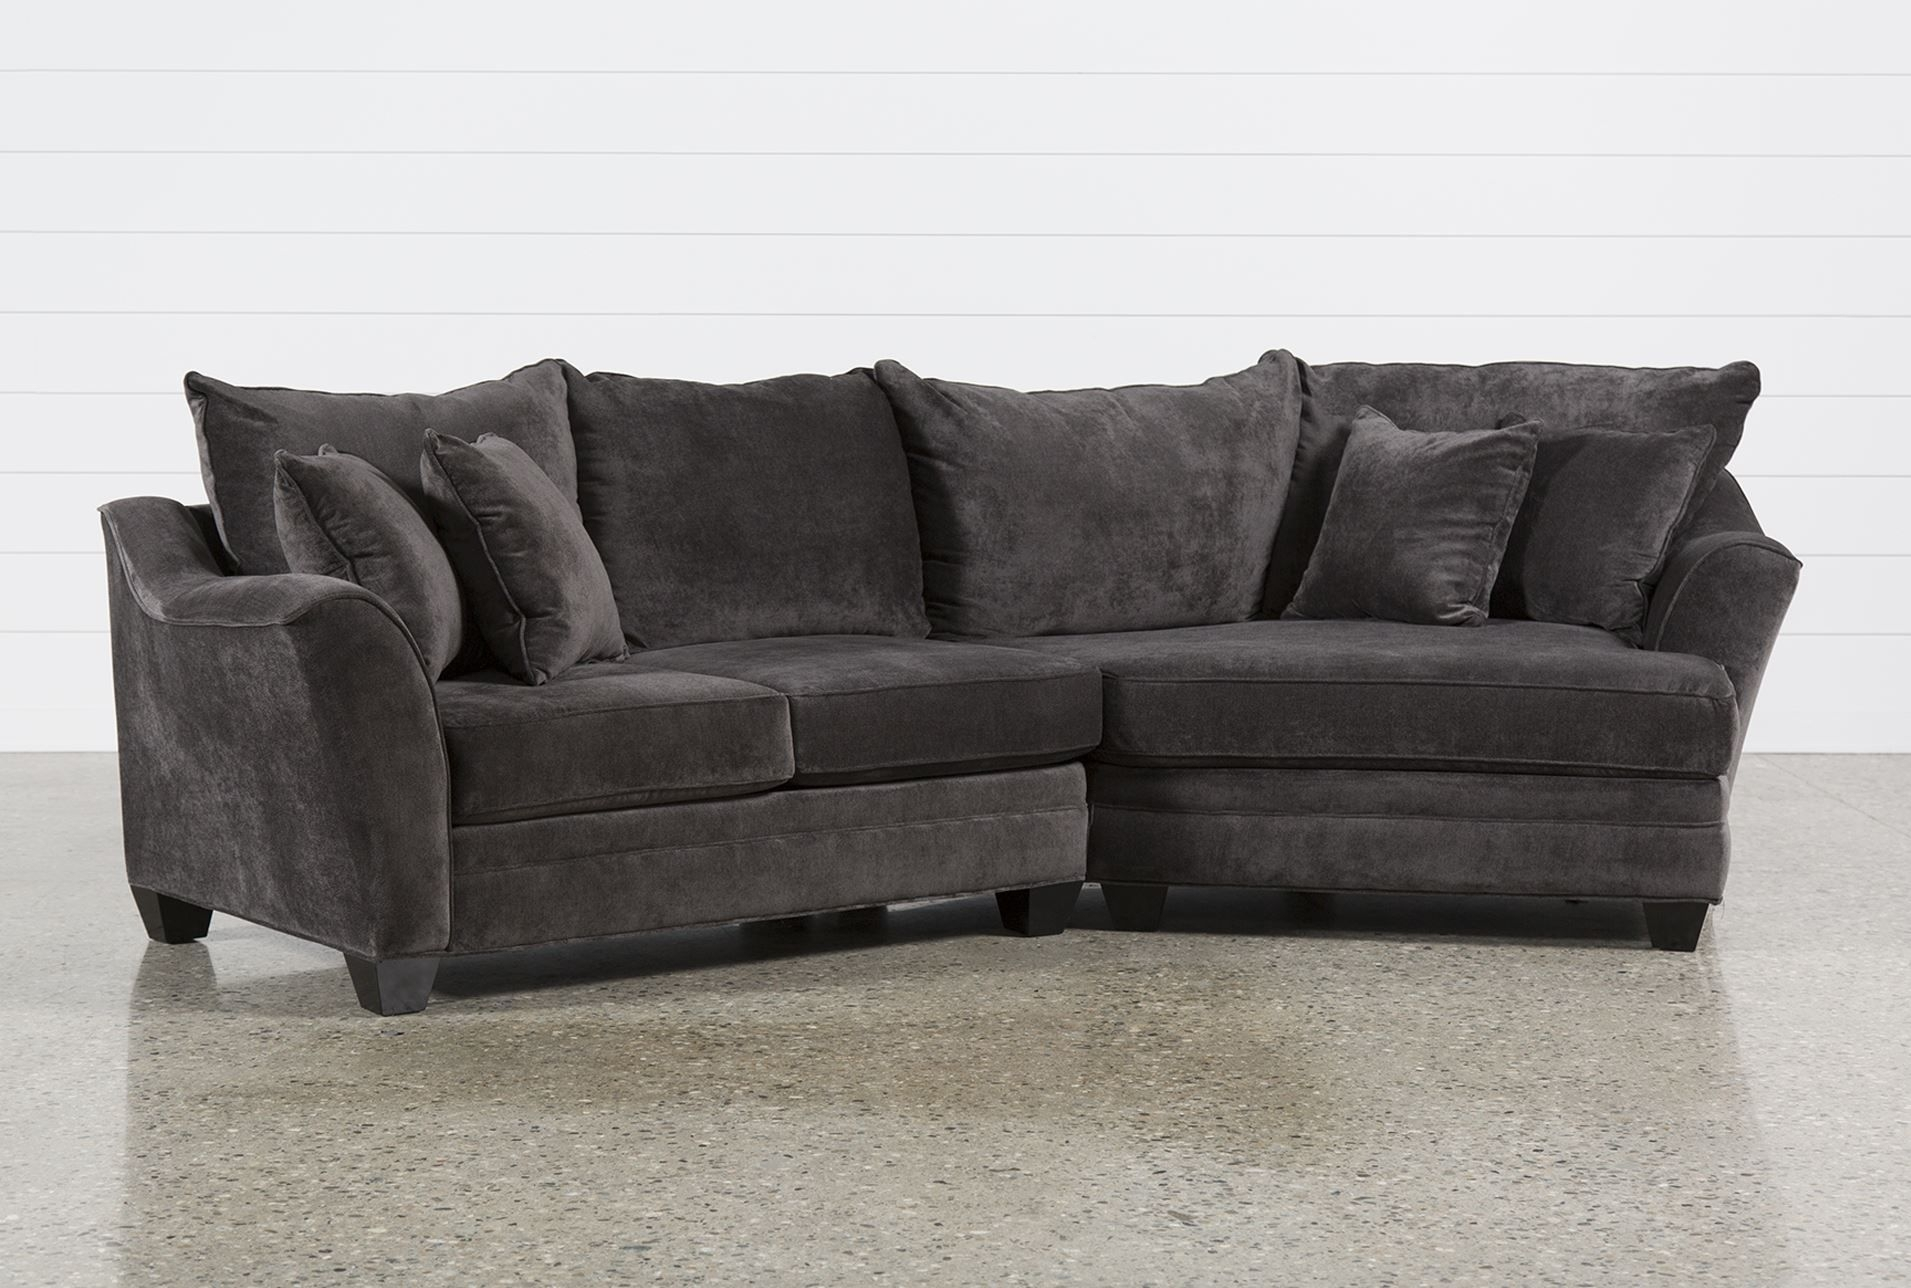 Belleview Graphite 2 Piece Sectional W/raf Cuddler - Dream Couch within Evan 2 Piece Sectionals With Raf Chaise (Image 6 of 30)